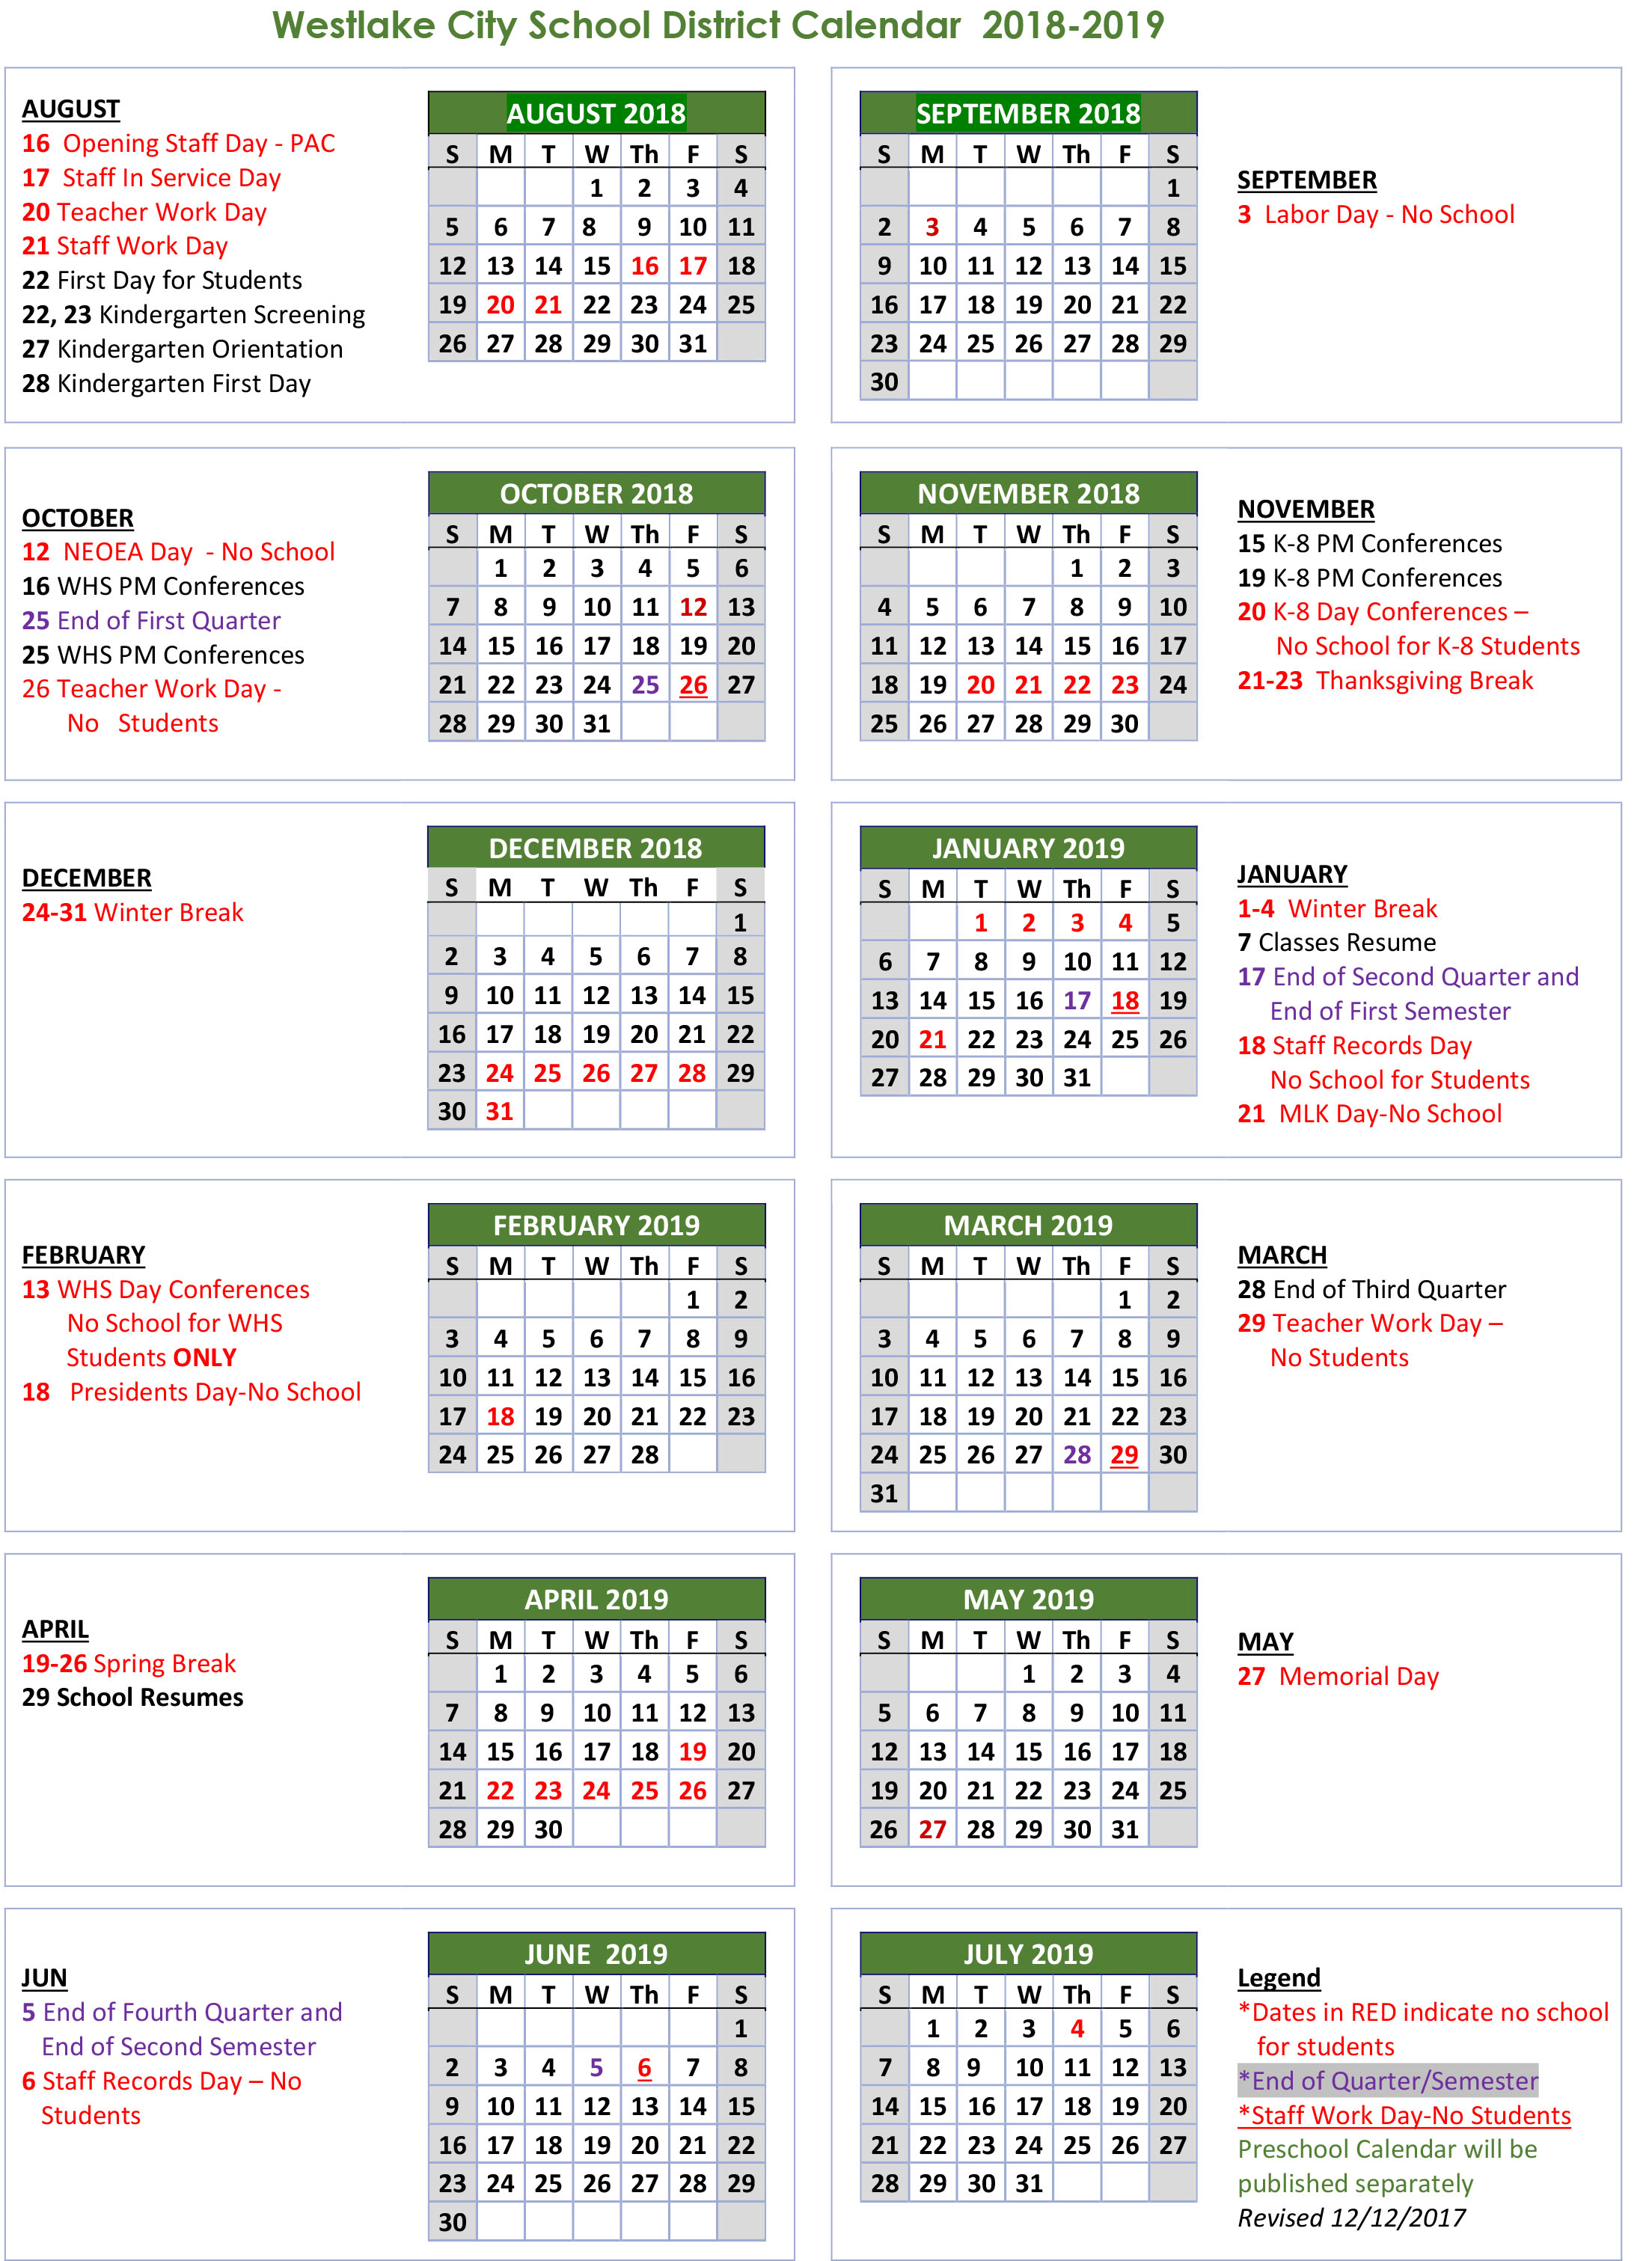 school calendar westlake city school district